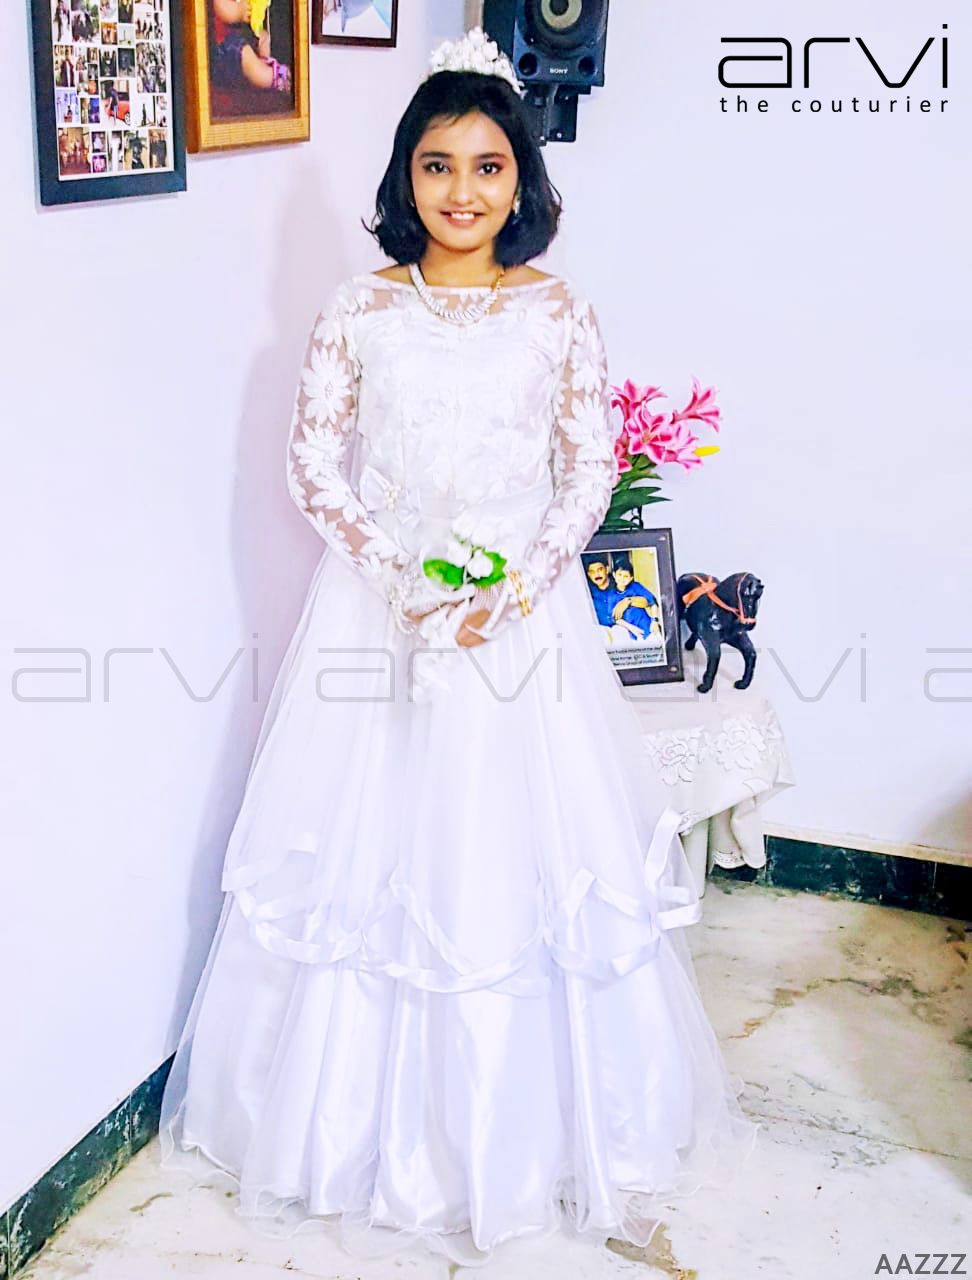 Custom Tailored Gown By Arvi The Couturier Kidswear Kids Kidsoutfit Happy Happykid Holy Gown Designer Des Kids Dress Kids Dresses Flower Girl Dresses